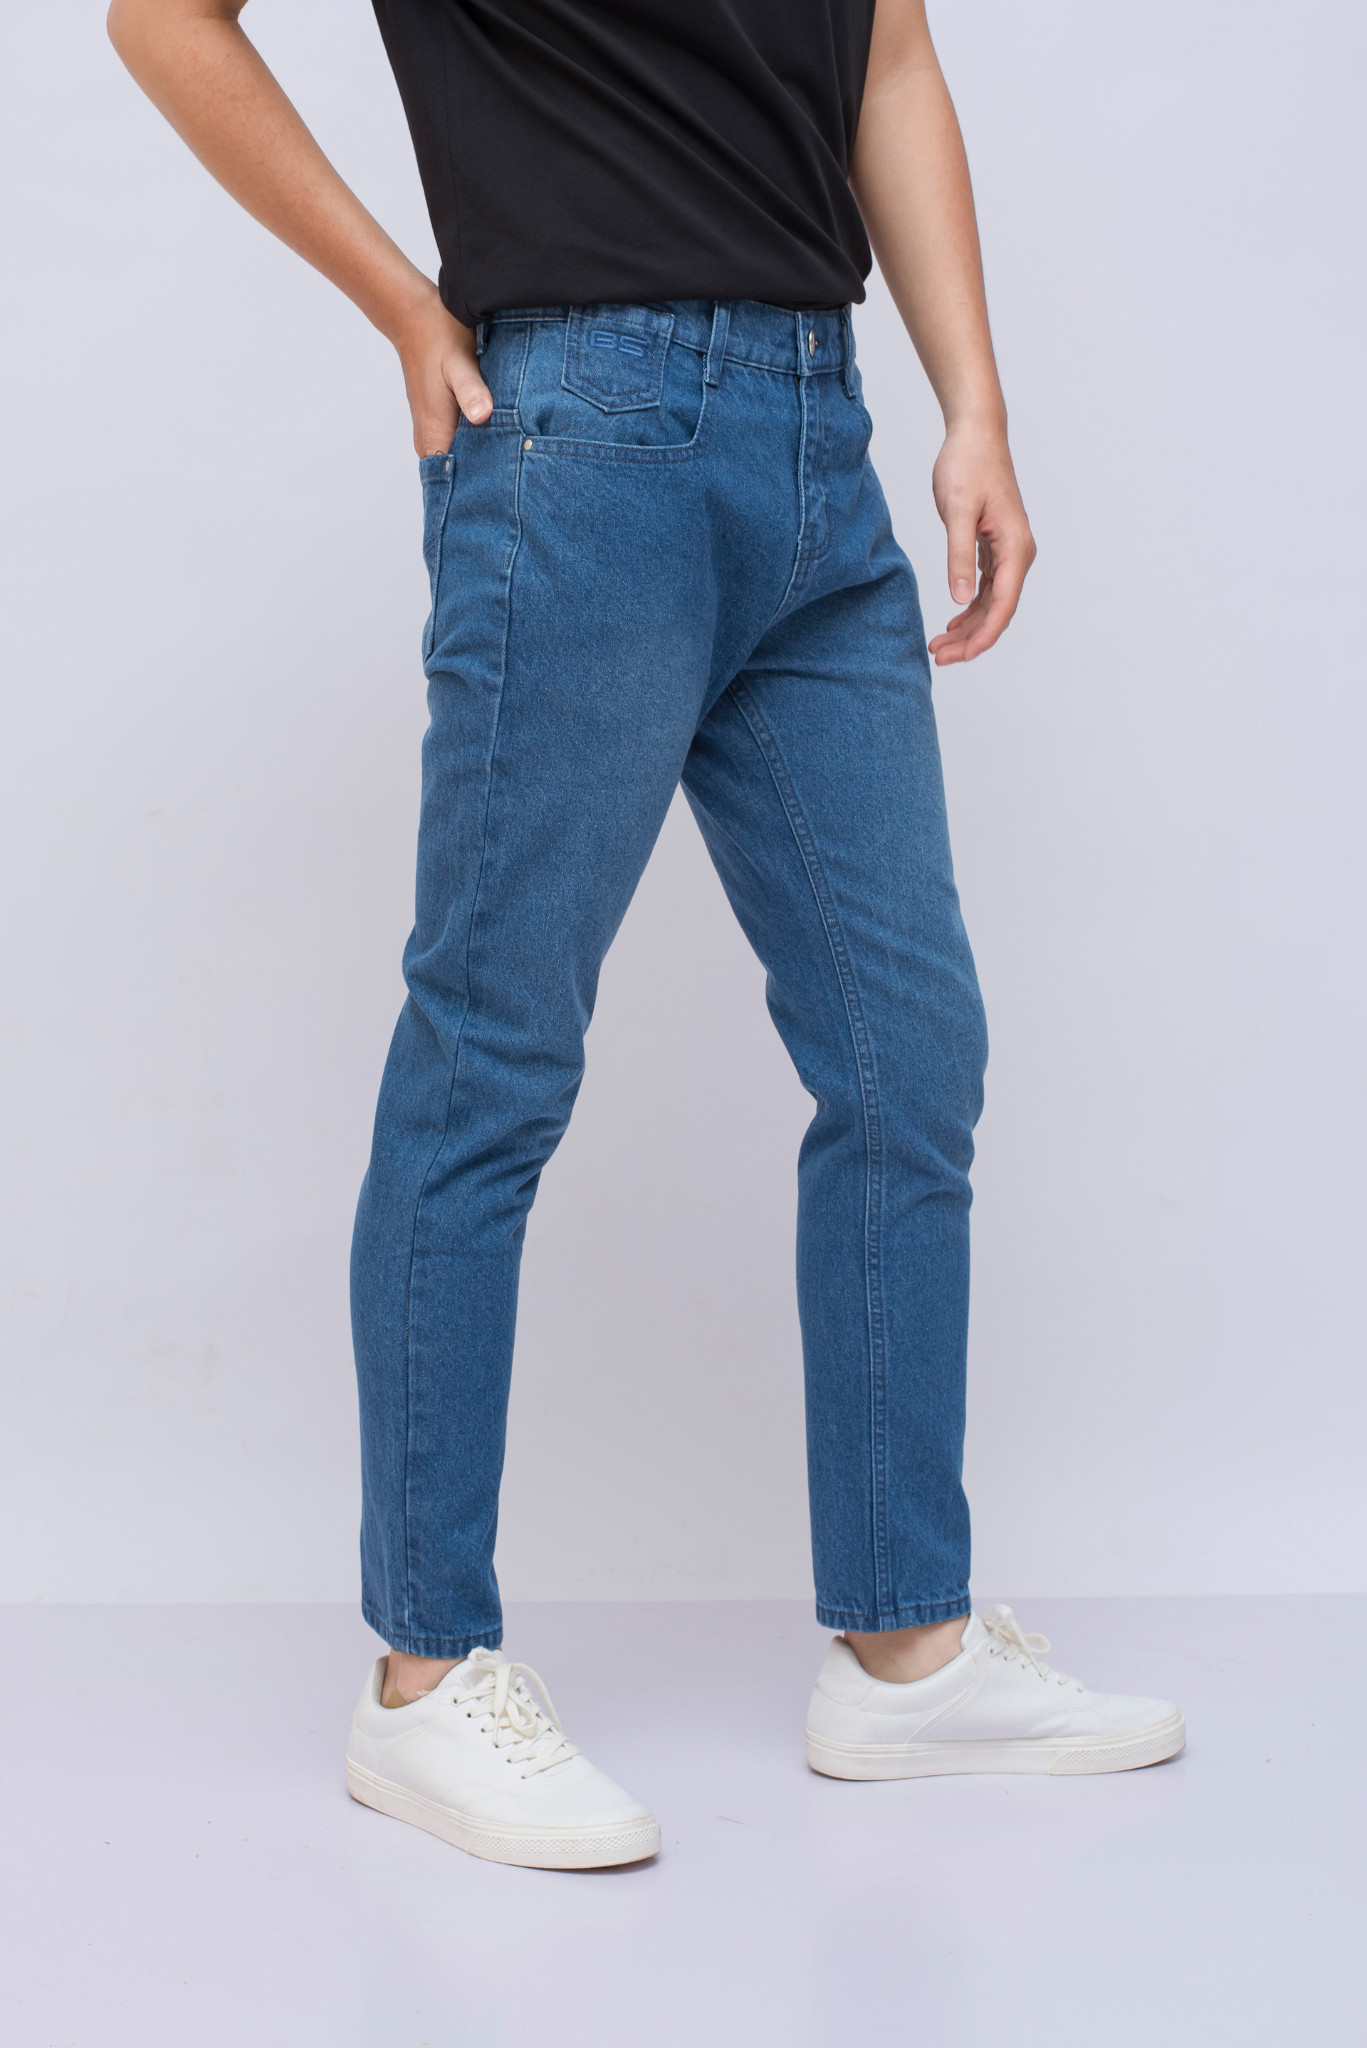 QUẦN JEANS NAM RELAX  BS